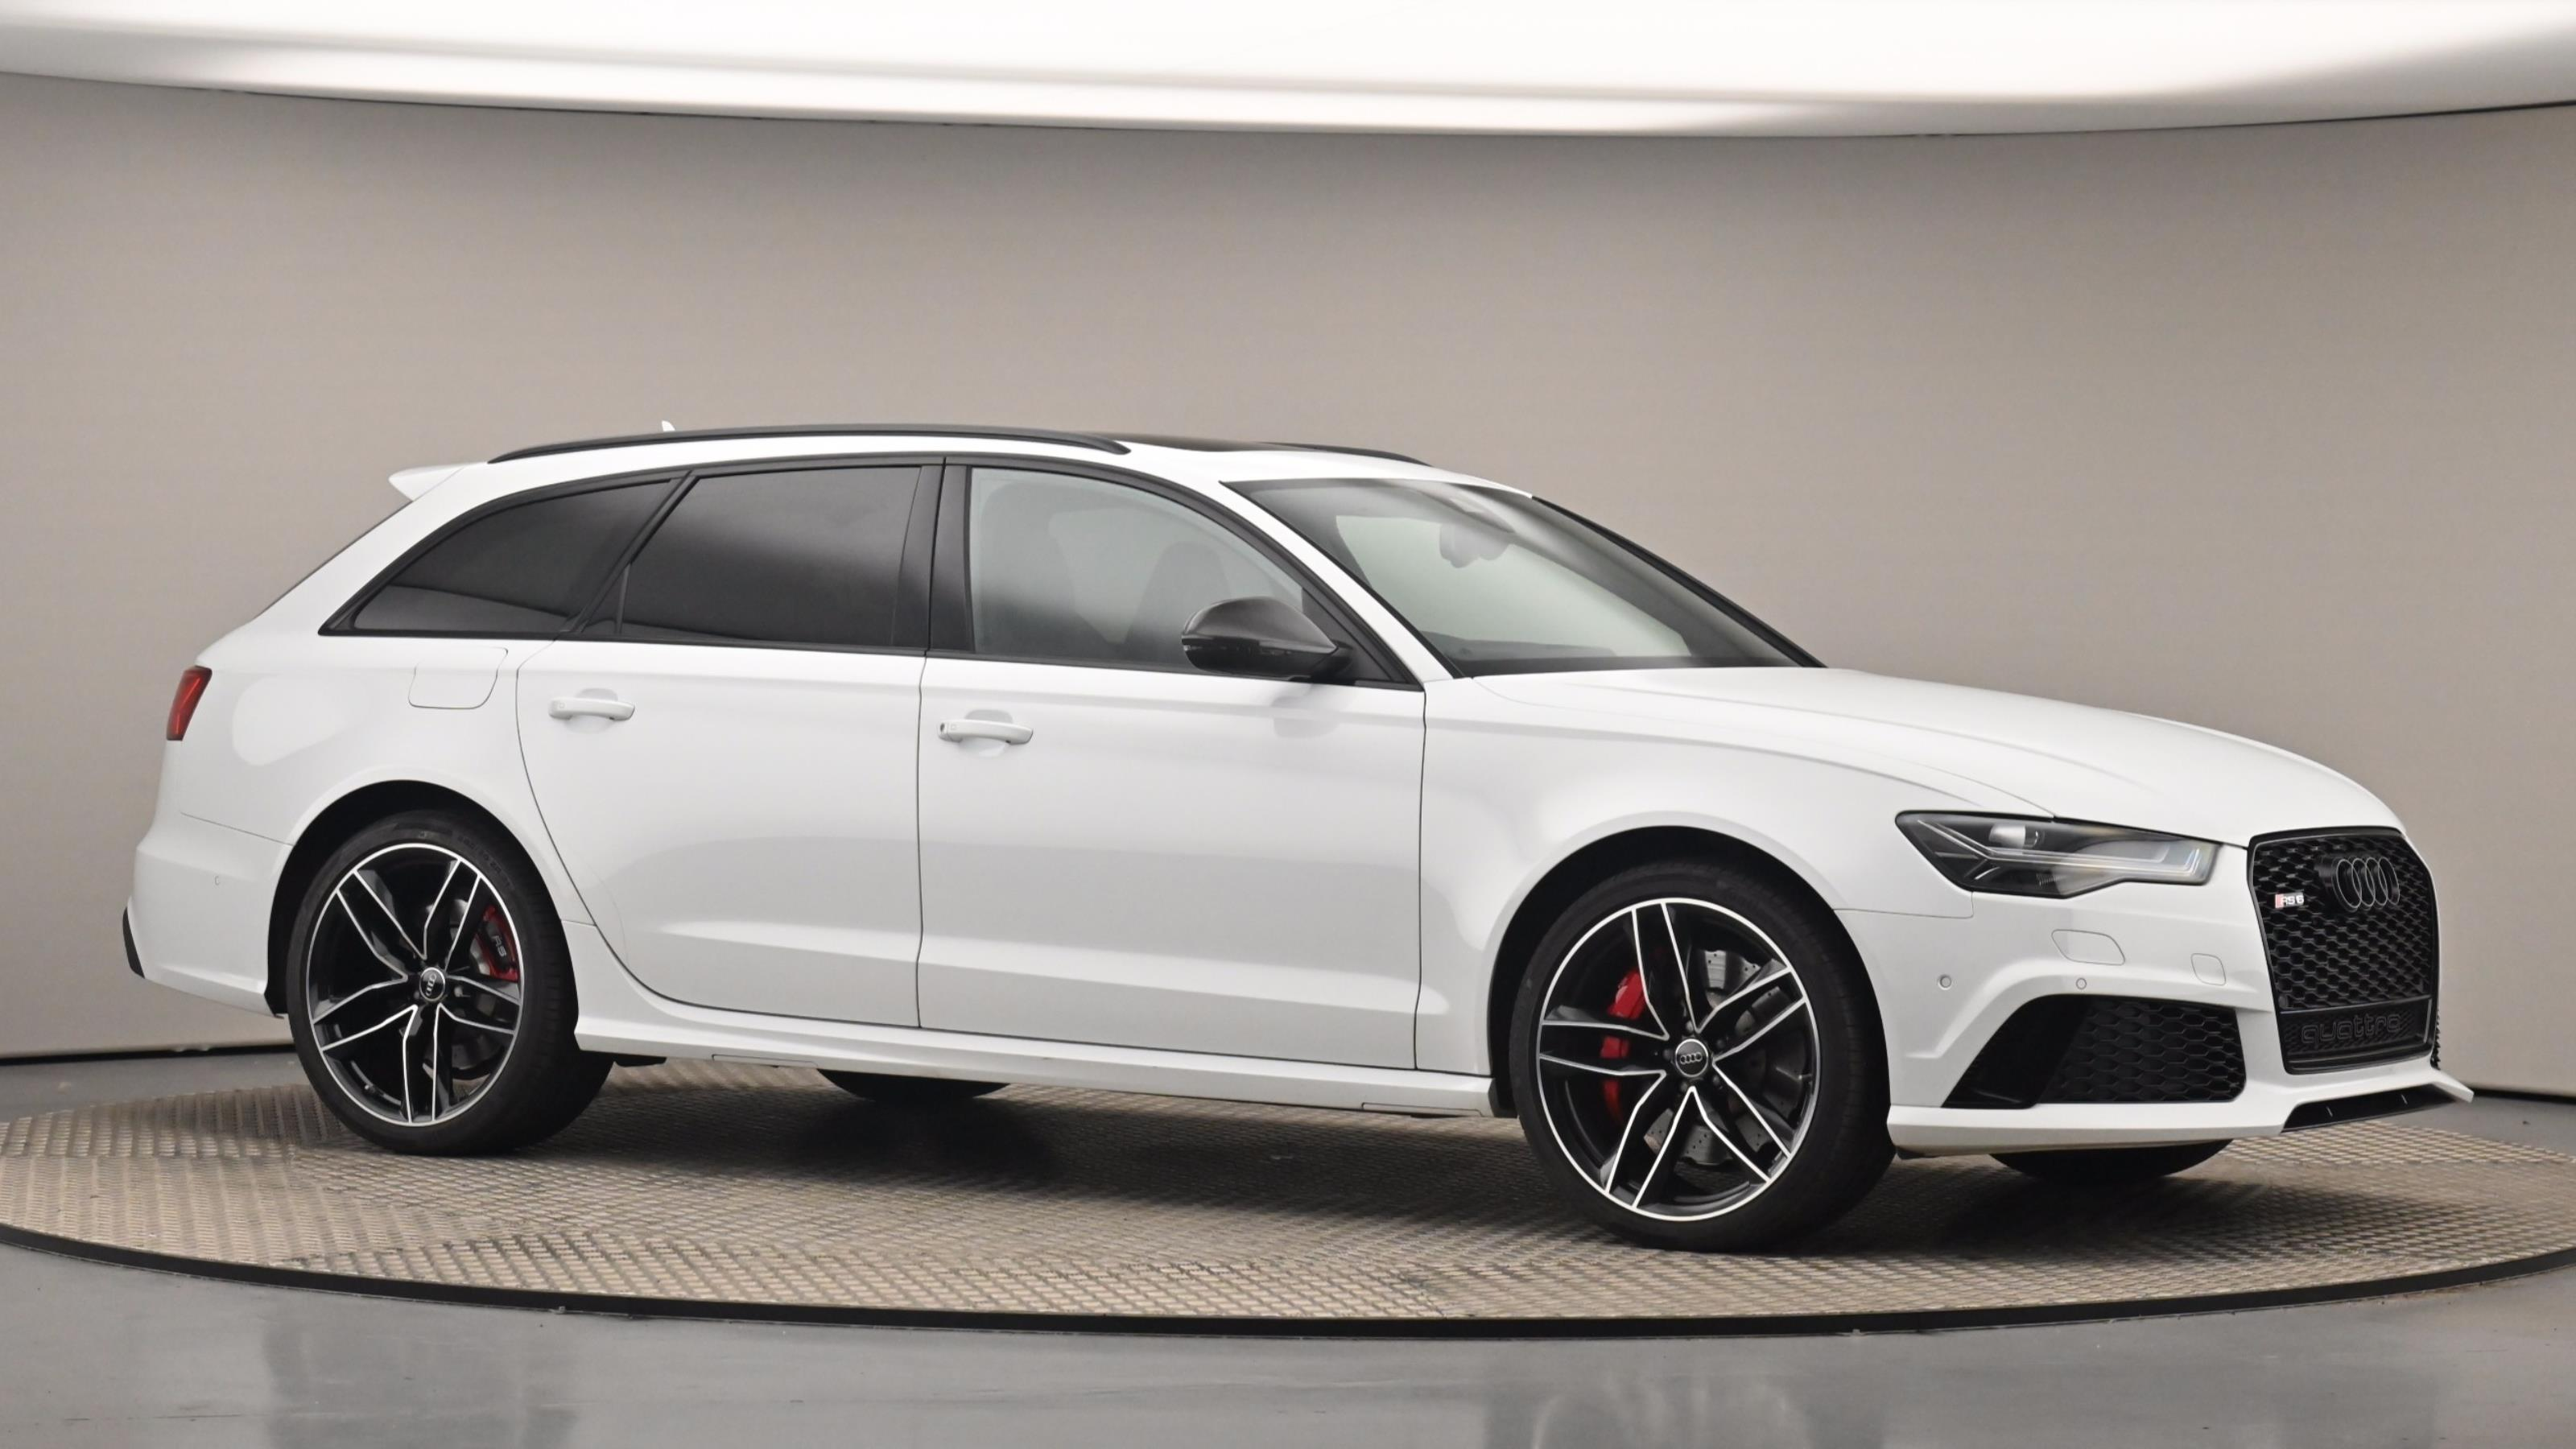 Used 2016 Audi RS6 4.0T FSI Quattro RS 6 5dr Tip Auto WHITE at Saxton4x4